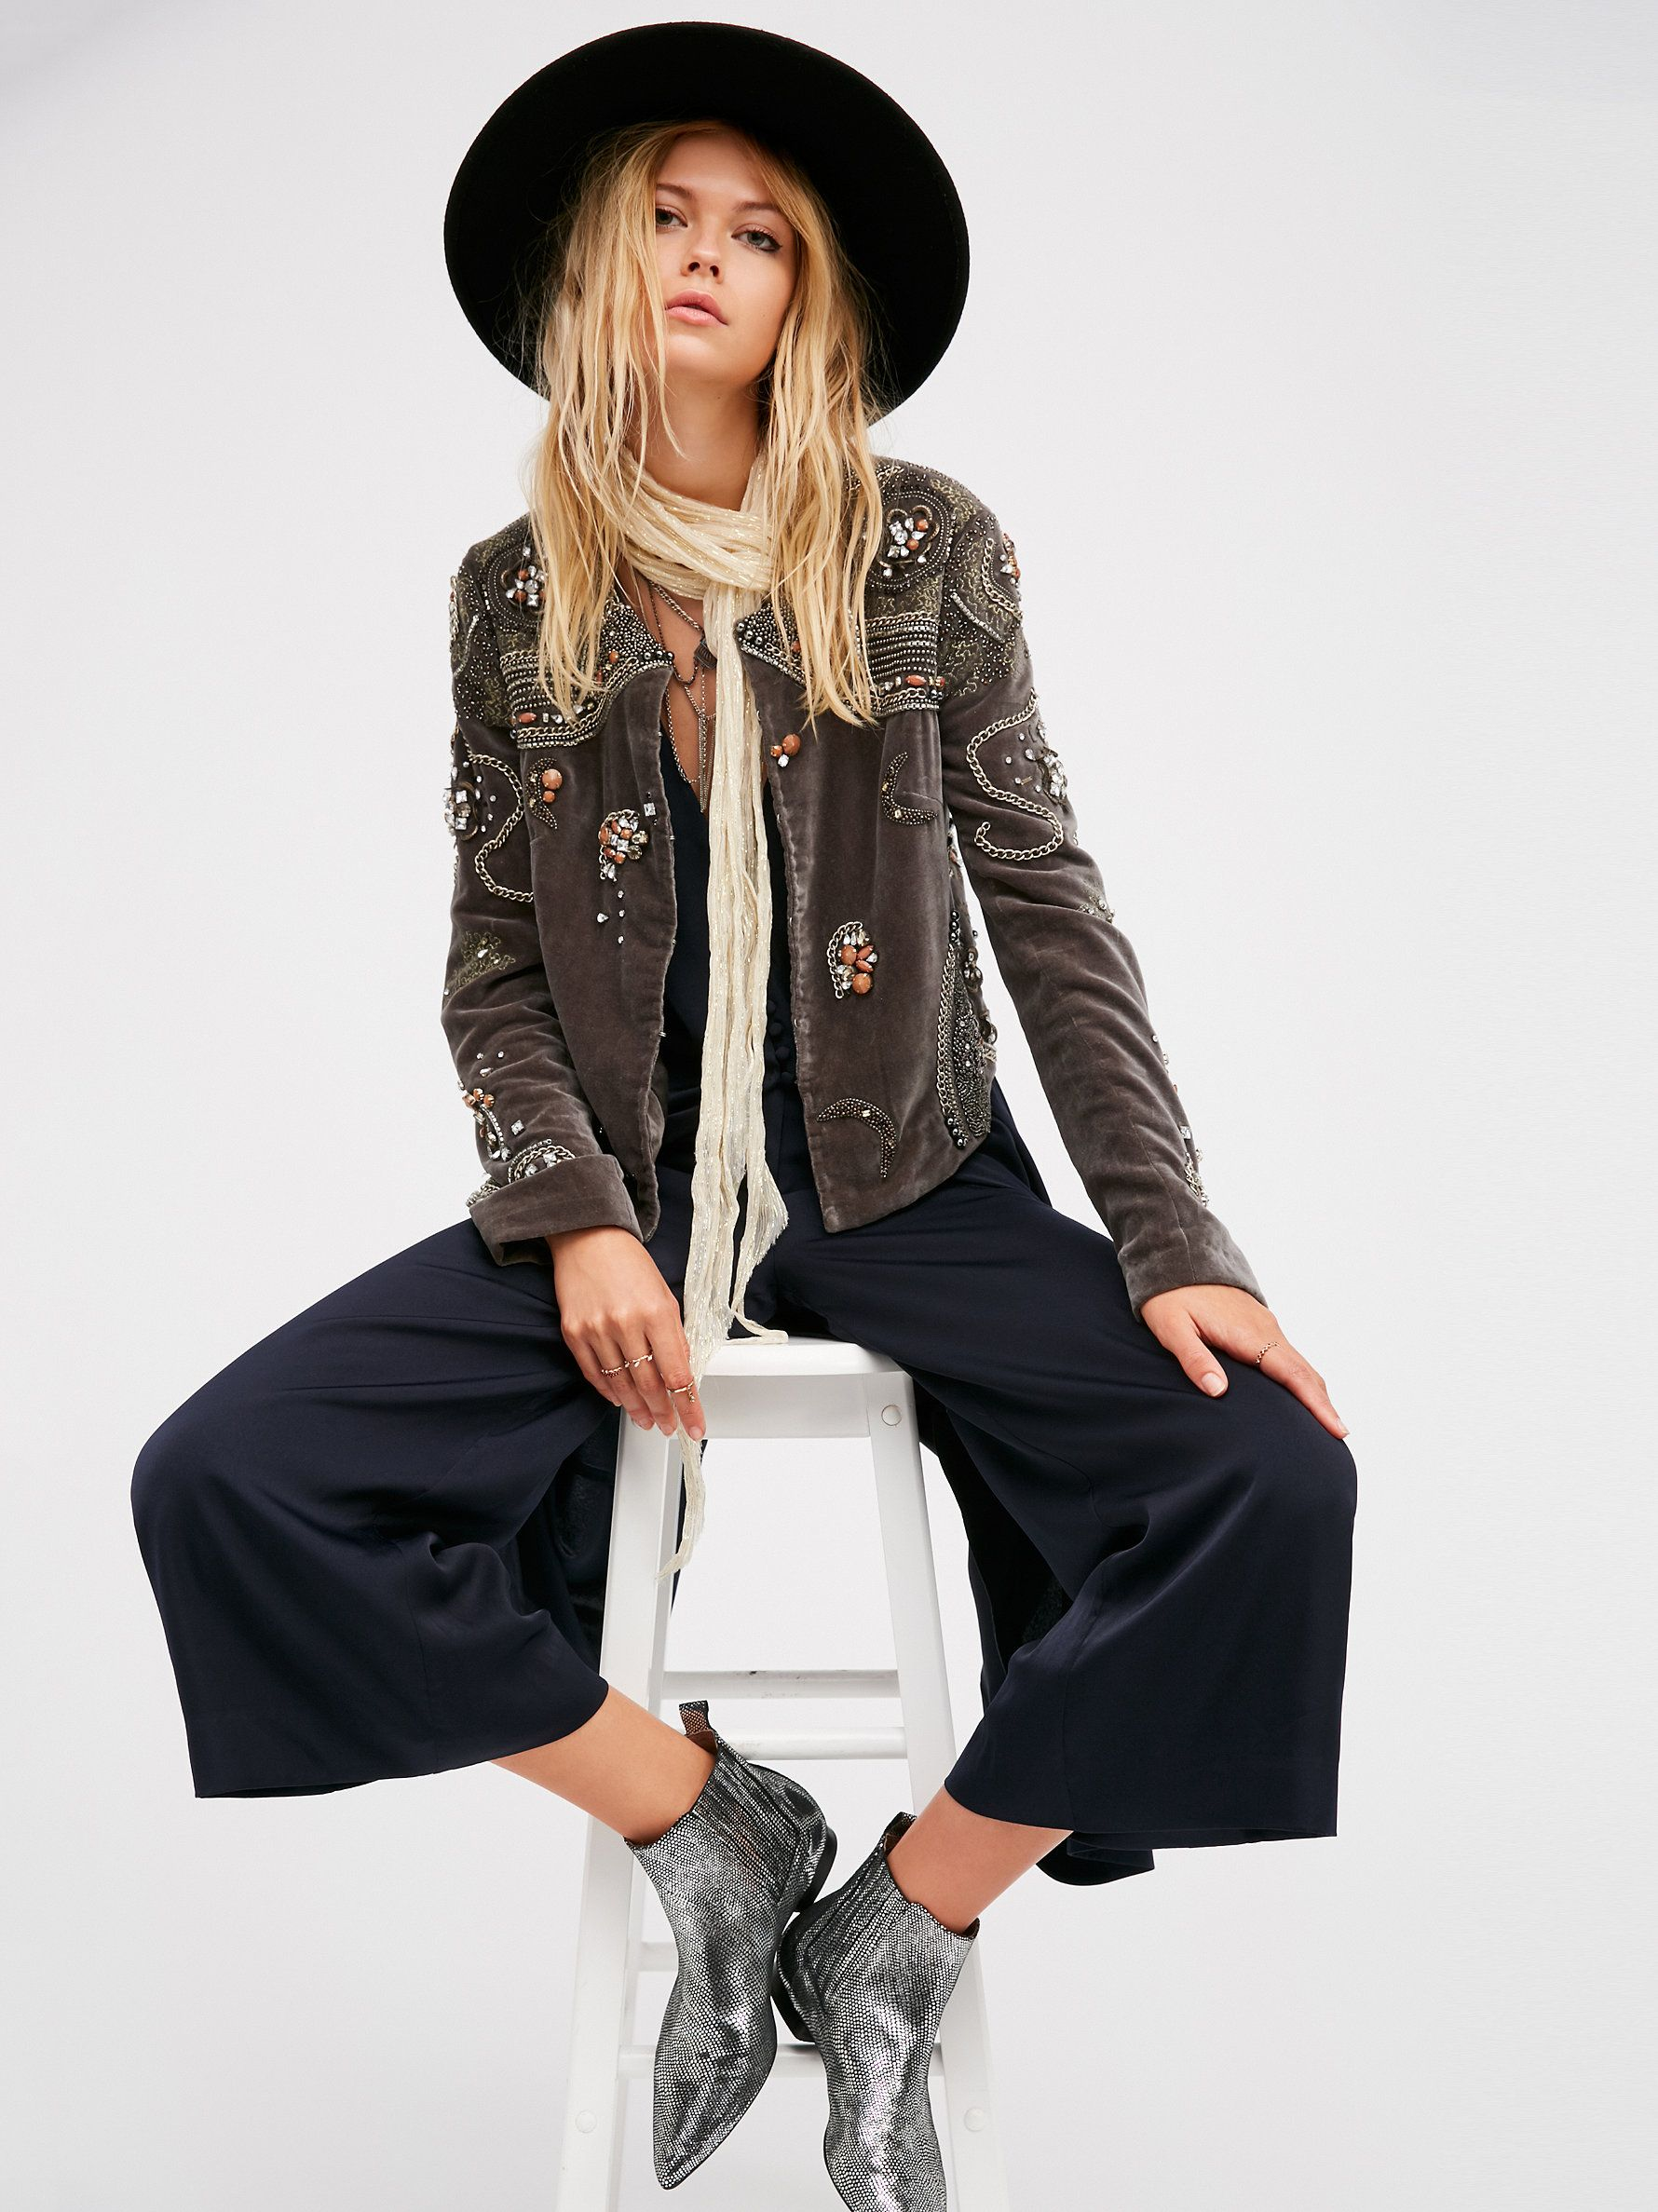 Moon Dance Jacket Soft To The Touch Cropped Jacket With An Open Design Featuring Gorgeous Embroidery And Eye Catching Embell Dance Jackets Jackets Moon Dance